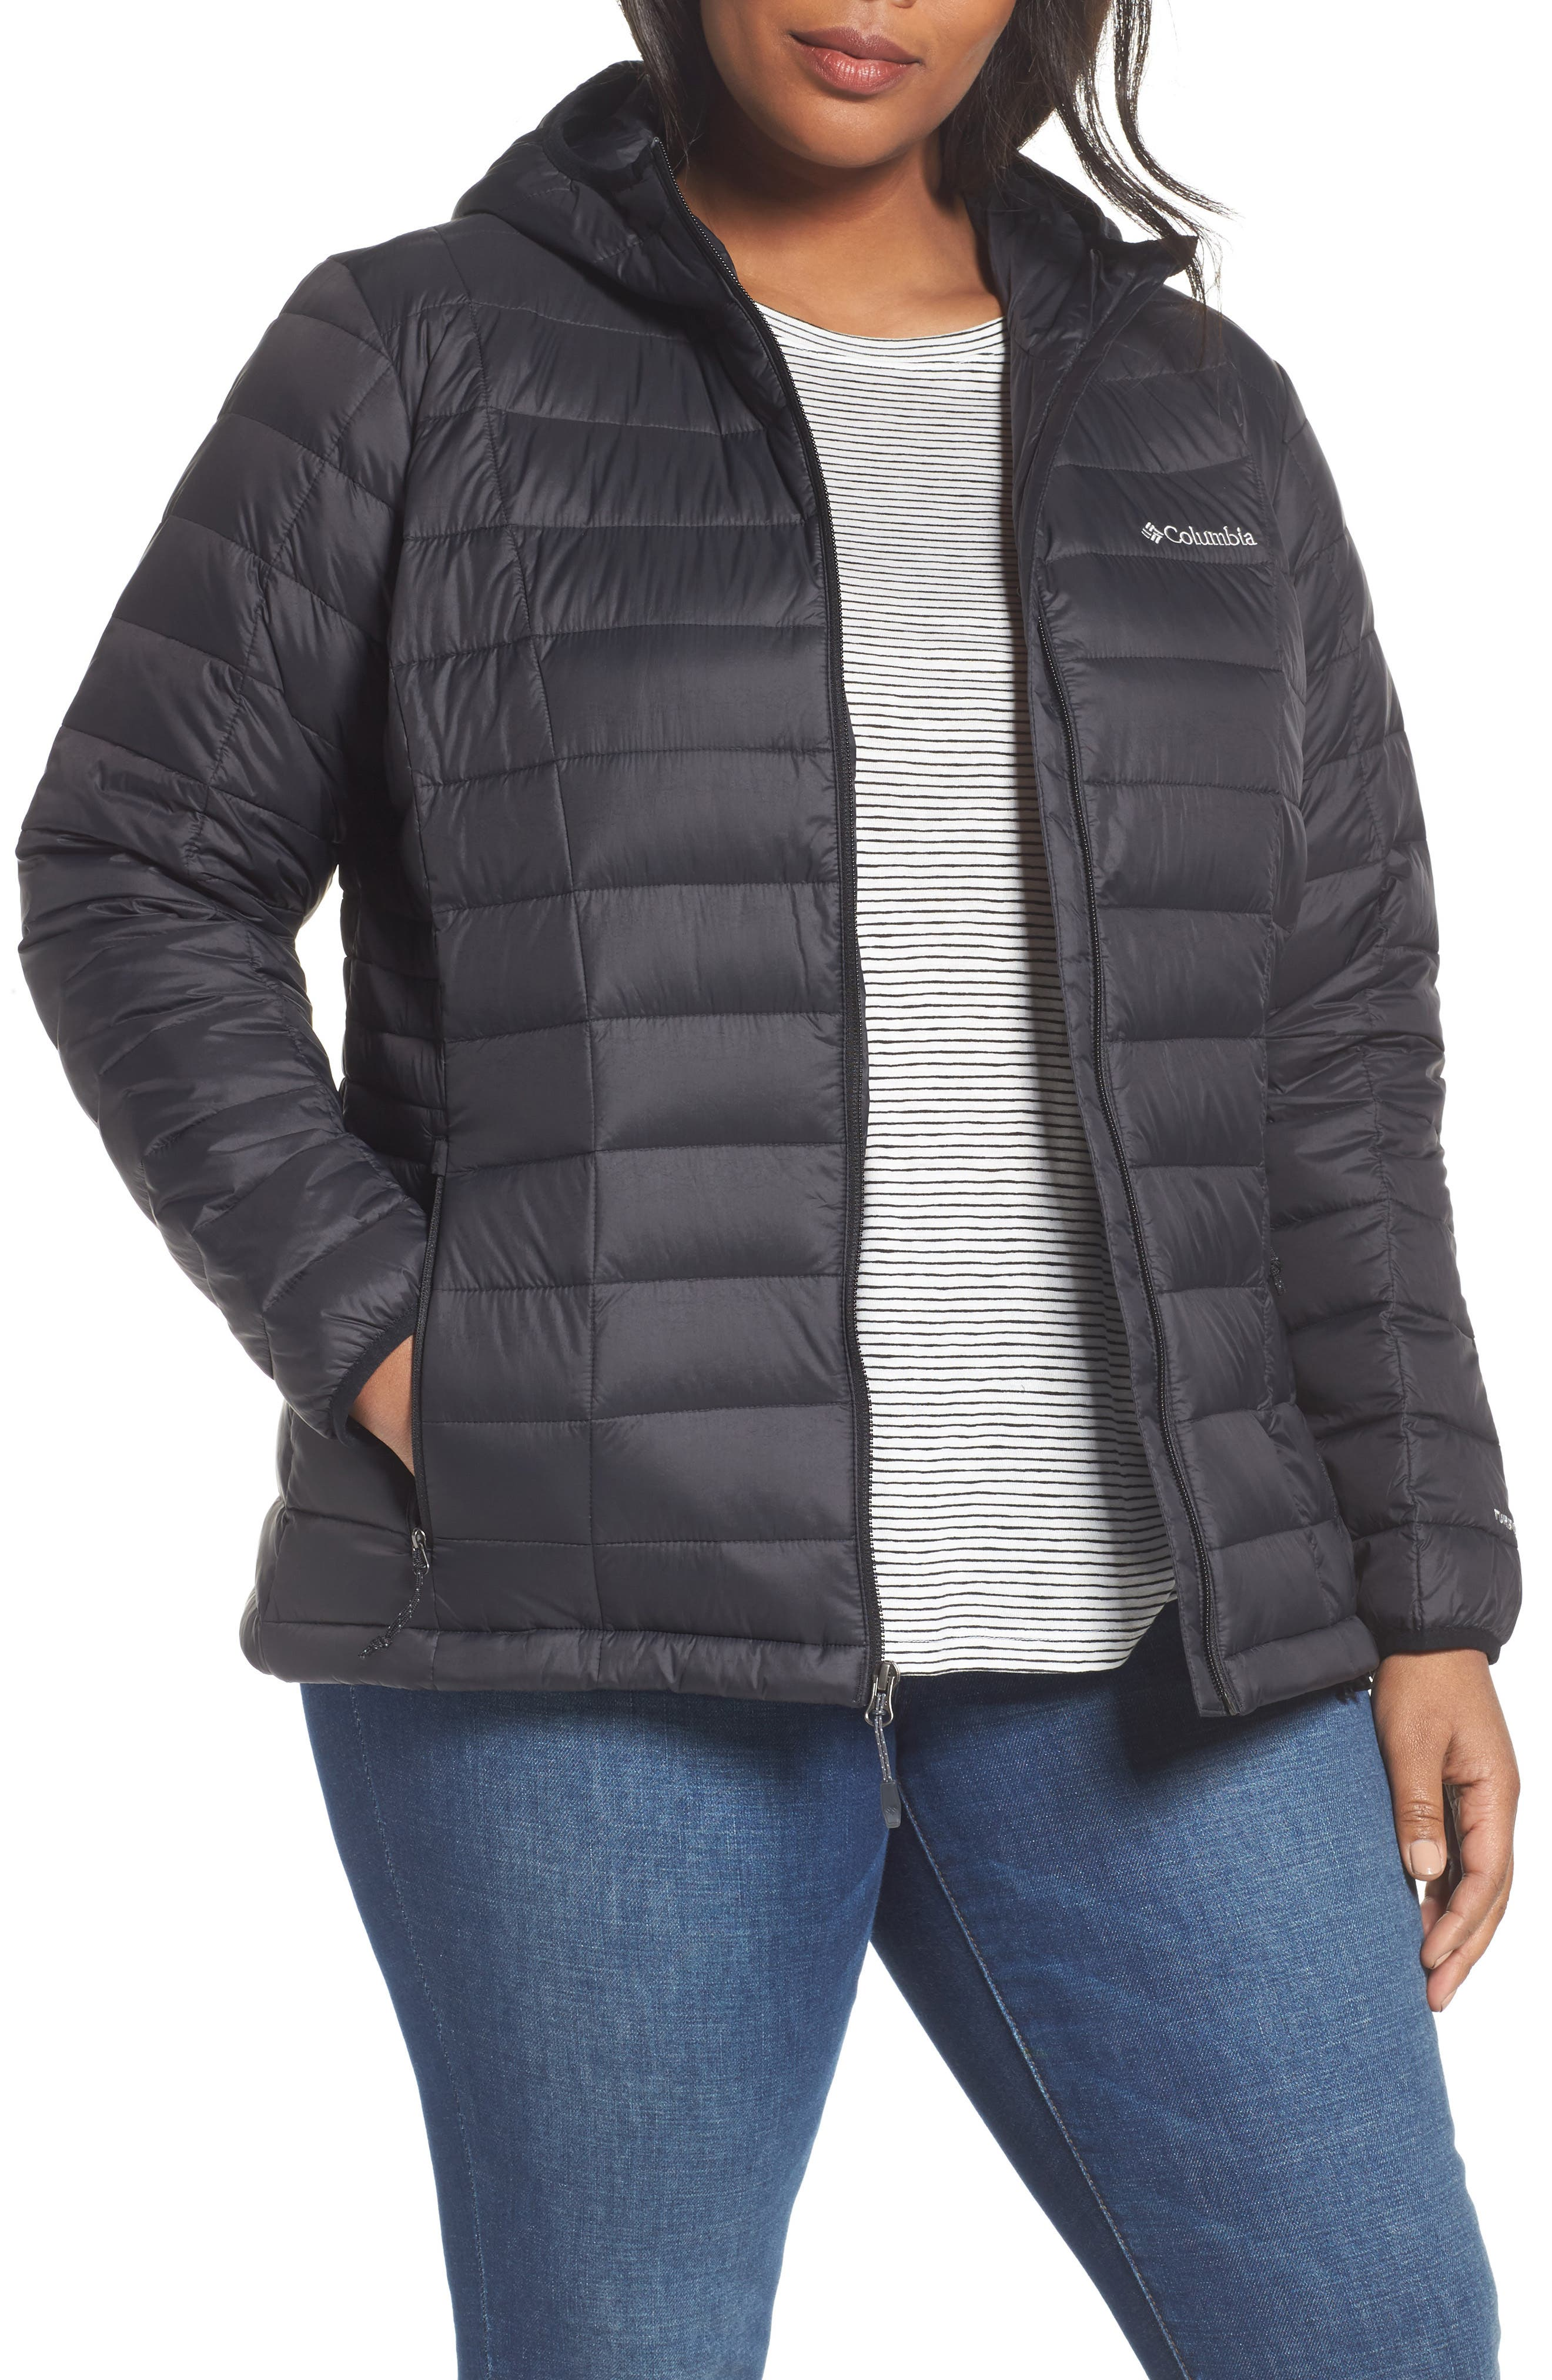 Voodoo Falls 590 Turbodown<sup>™</sup> Down Jacket,                             Main thumbnail 1, color,                             010